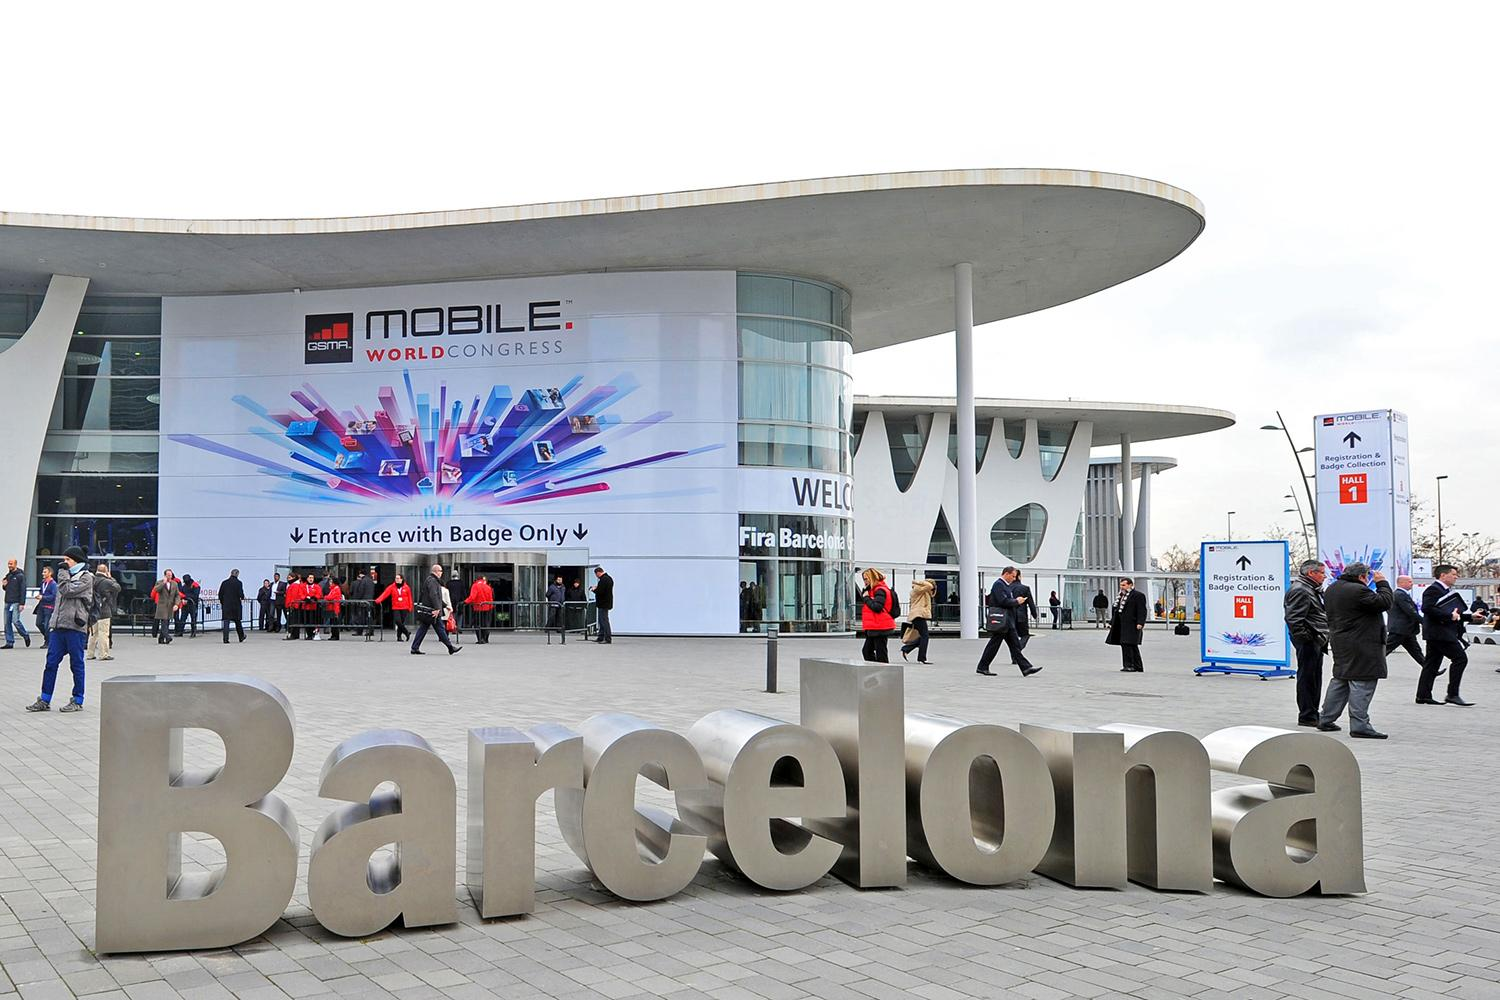 Mobile World Congress in barcelona - MWC 2019